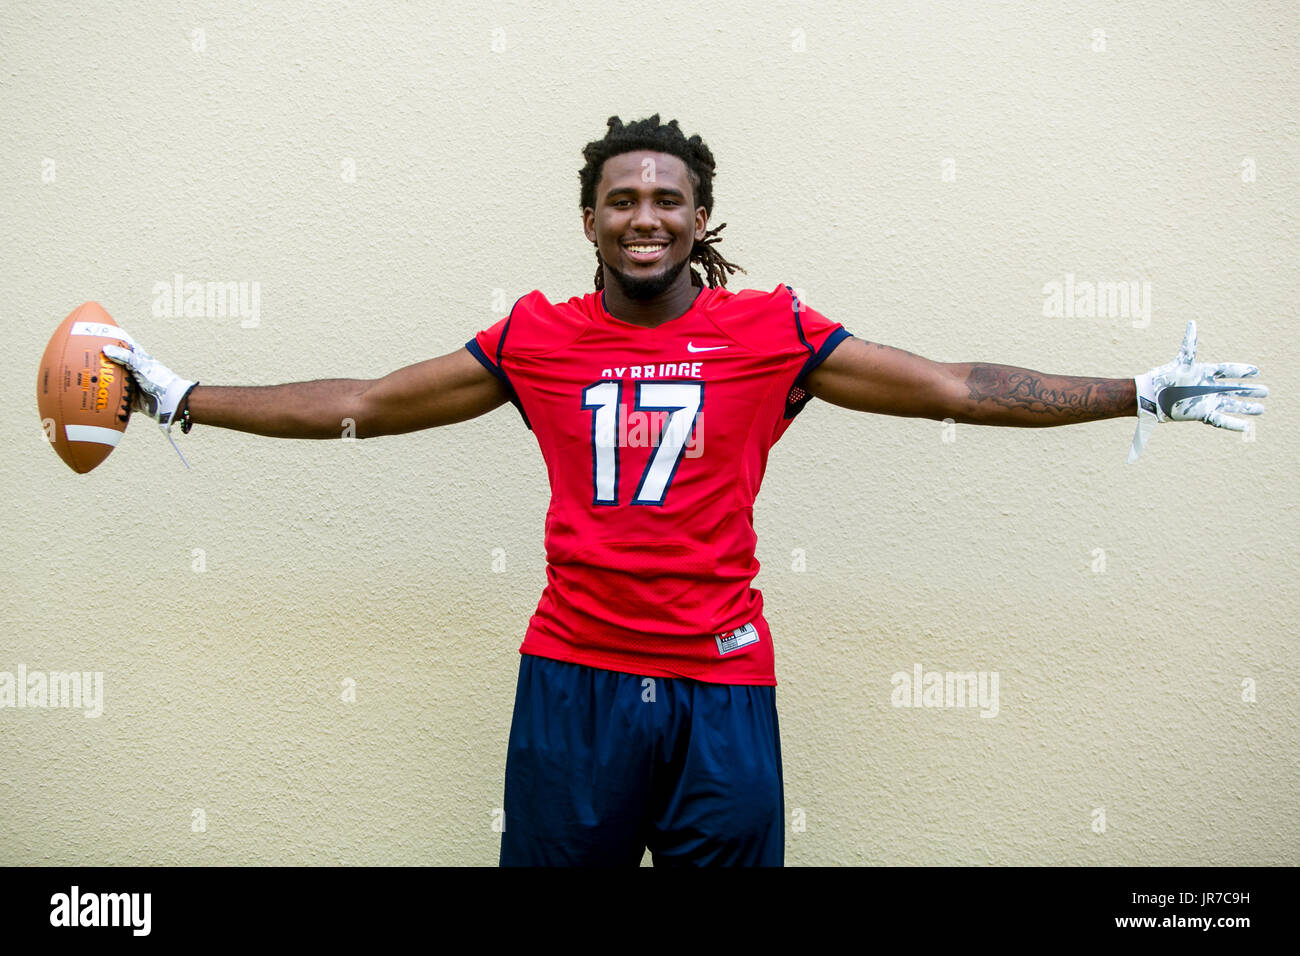 August 3, 2017 - Florida, U.S. - Oxbridge Academy Super 11 player C.J. Smith in West Palm Beach on August 3, 2017. (Credit Image: © Richard Graulich/The Palm Beach Post via ZUMA Wire) - Stock Image